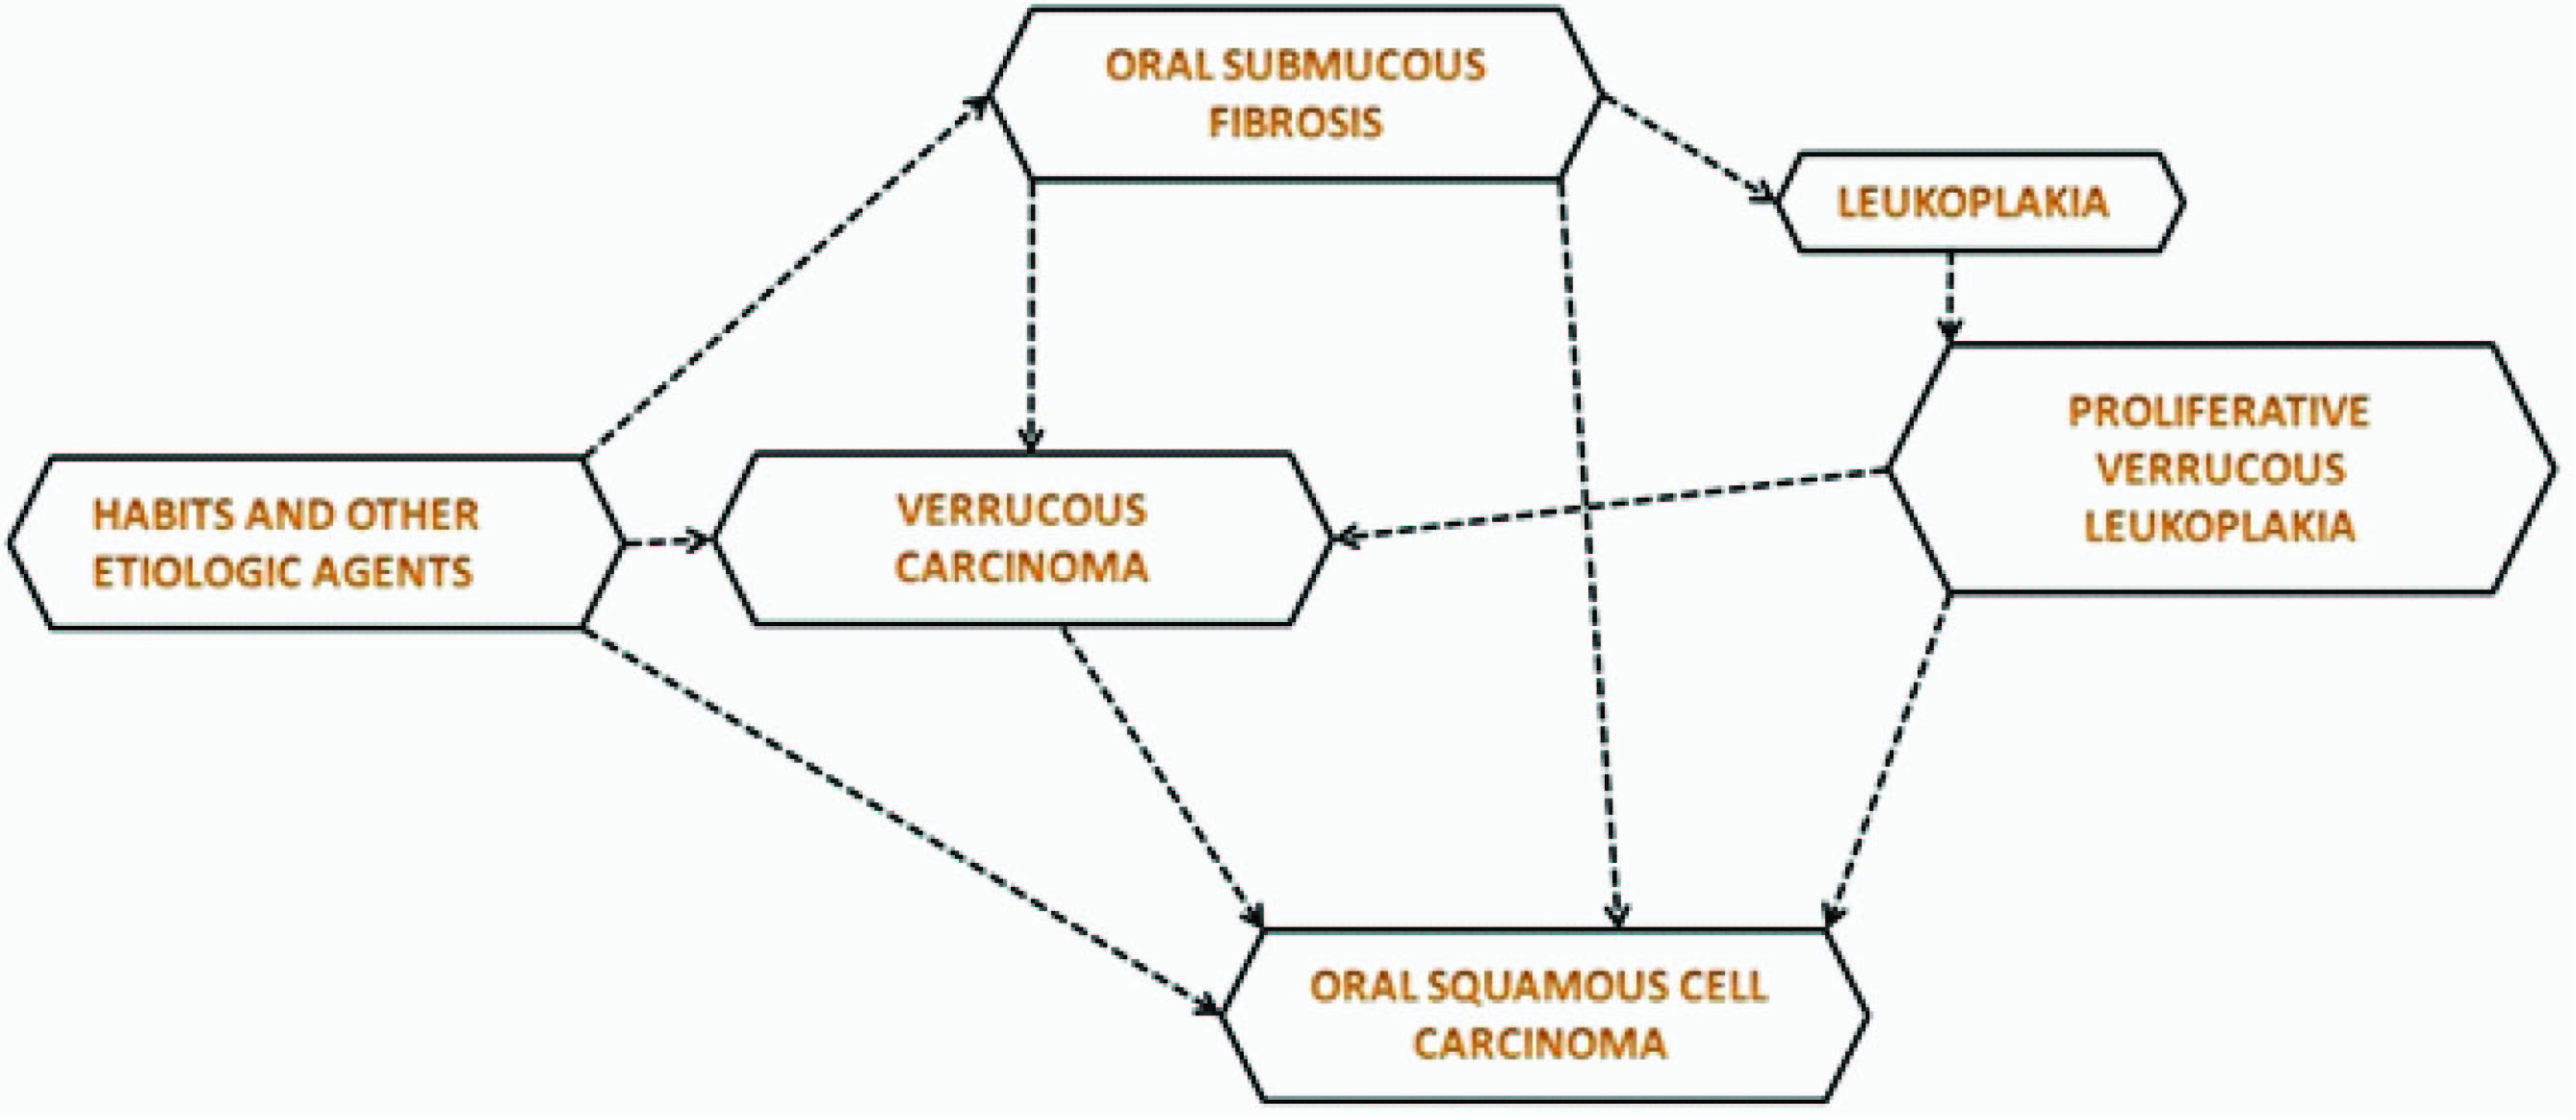 Illustrating possible role of factors in development of verrucous carcinoma